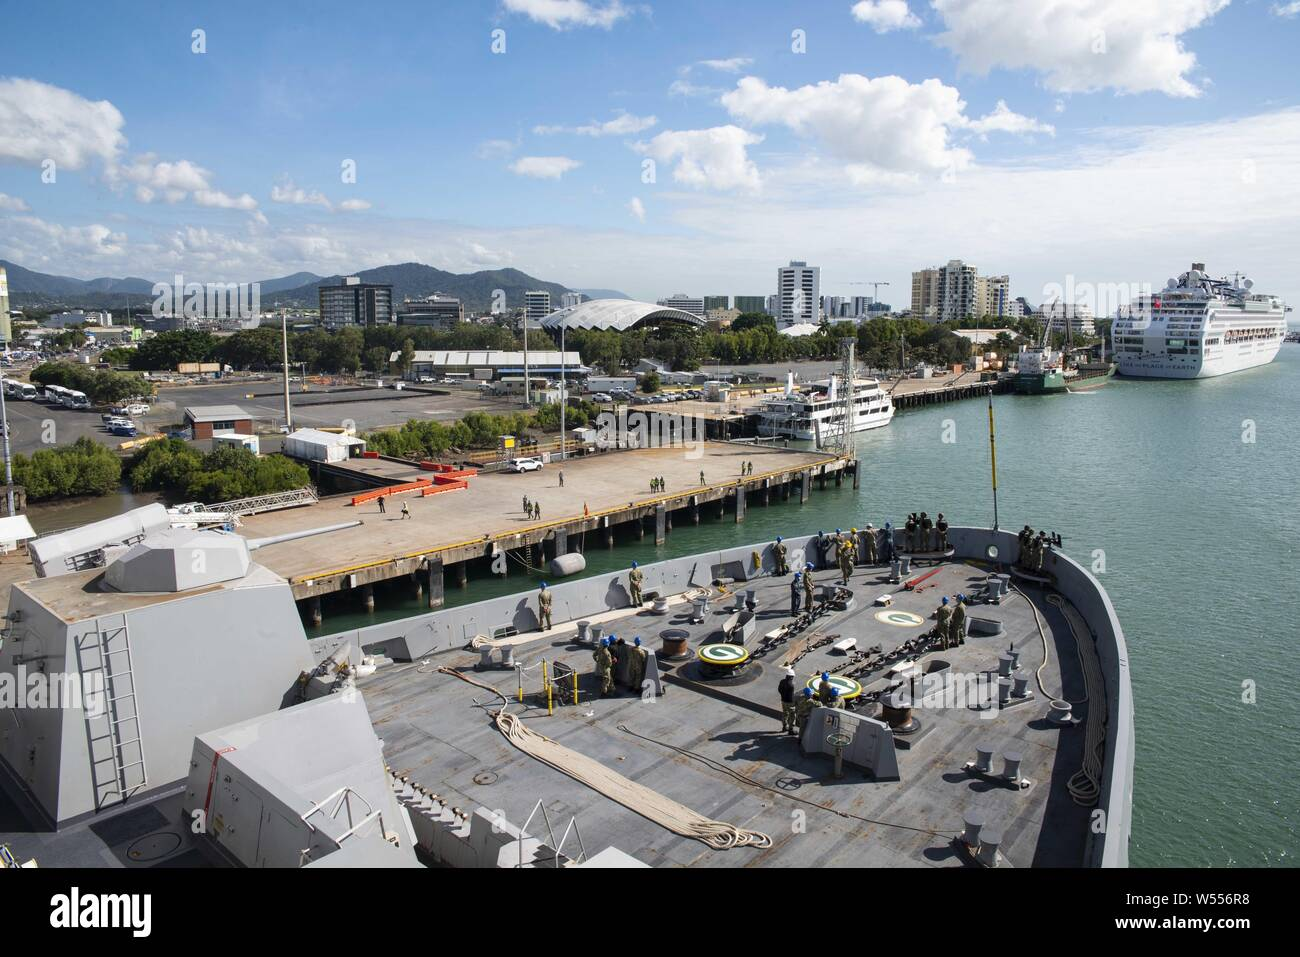 190726-N-DX072-1059 CAIRNS, Australia (July 26, 2019) The amphibious transport dock ship USS Green Bay (LPD 20) arrives in Cairns, Australia for a scheduled port visit, July 26, 2019. Green Bay, part of the Wasp Expeditionary Strike Group, with embarked 31st Marine Expeditionary Unit, participated in Talisman Sabre 2019 off the coast of Northern Australia. A bilateral, biennial event, Talisman Sabre is designed to improve U.S. and Australian combat training, readiness and interoperability through realistic, relevant training necessary to maintain regional security, peace and stability. (U.S. N Stock Photo